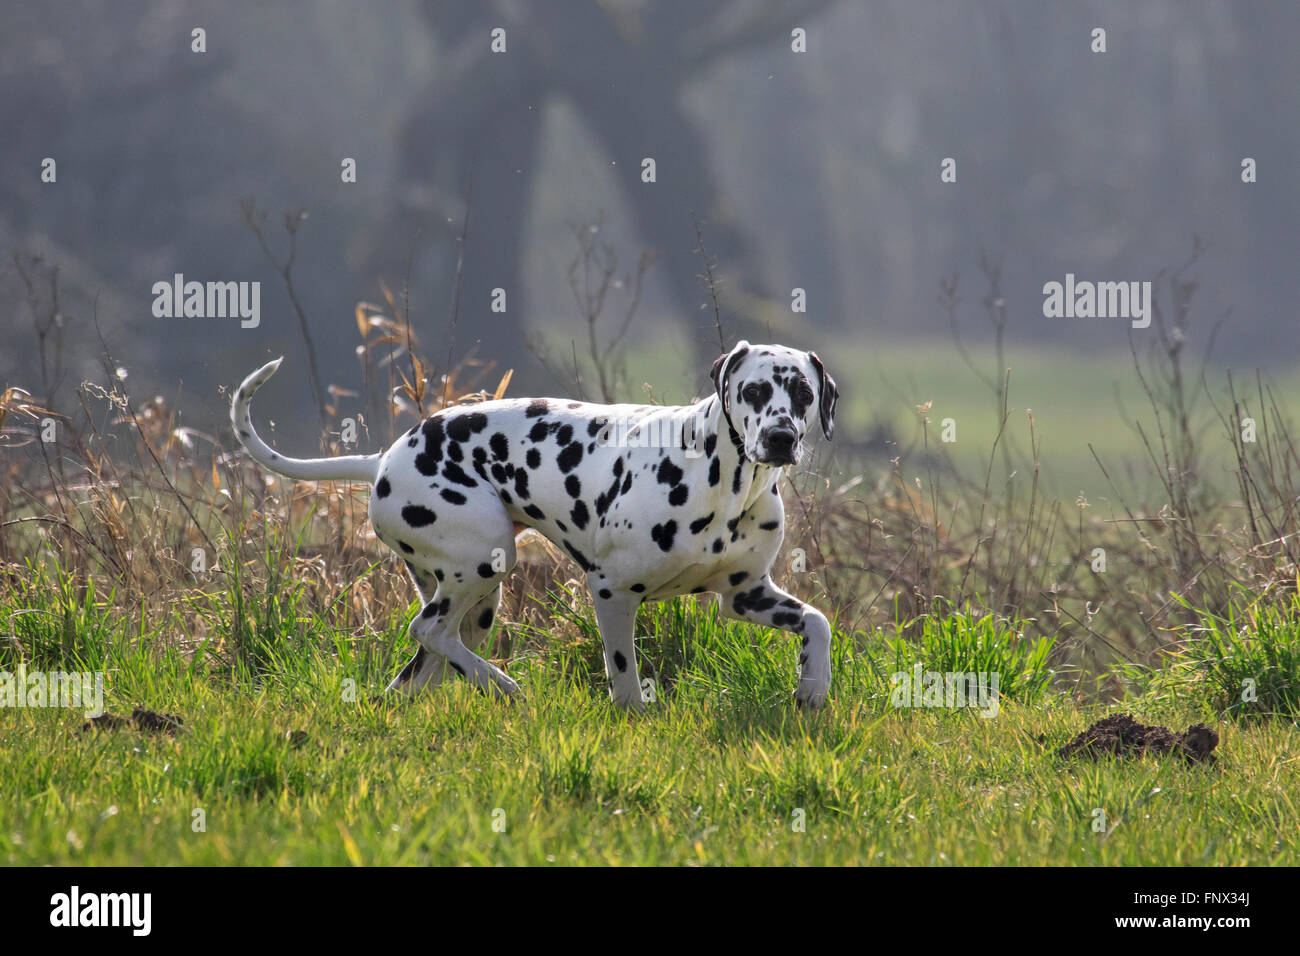 Dalmatian / carriage dog / spotted coach dog walking in field - Stock Image